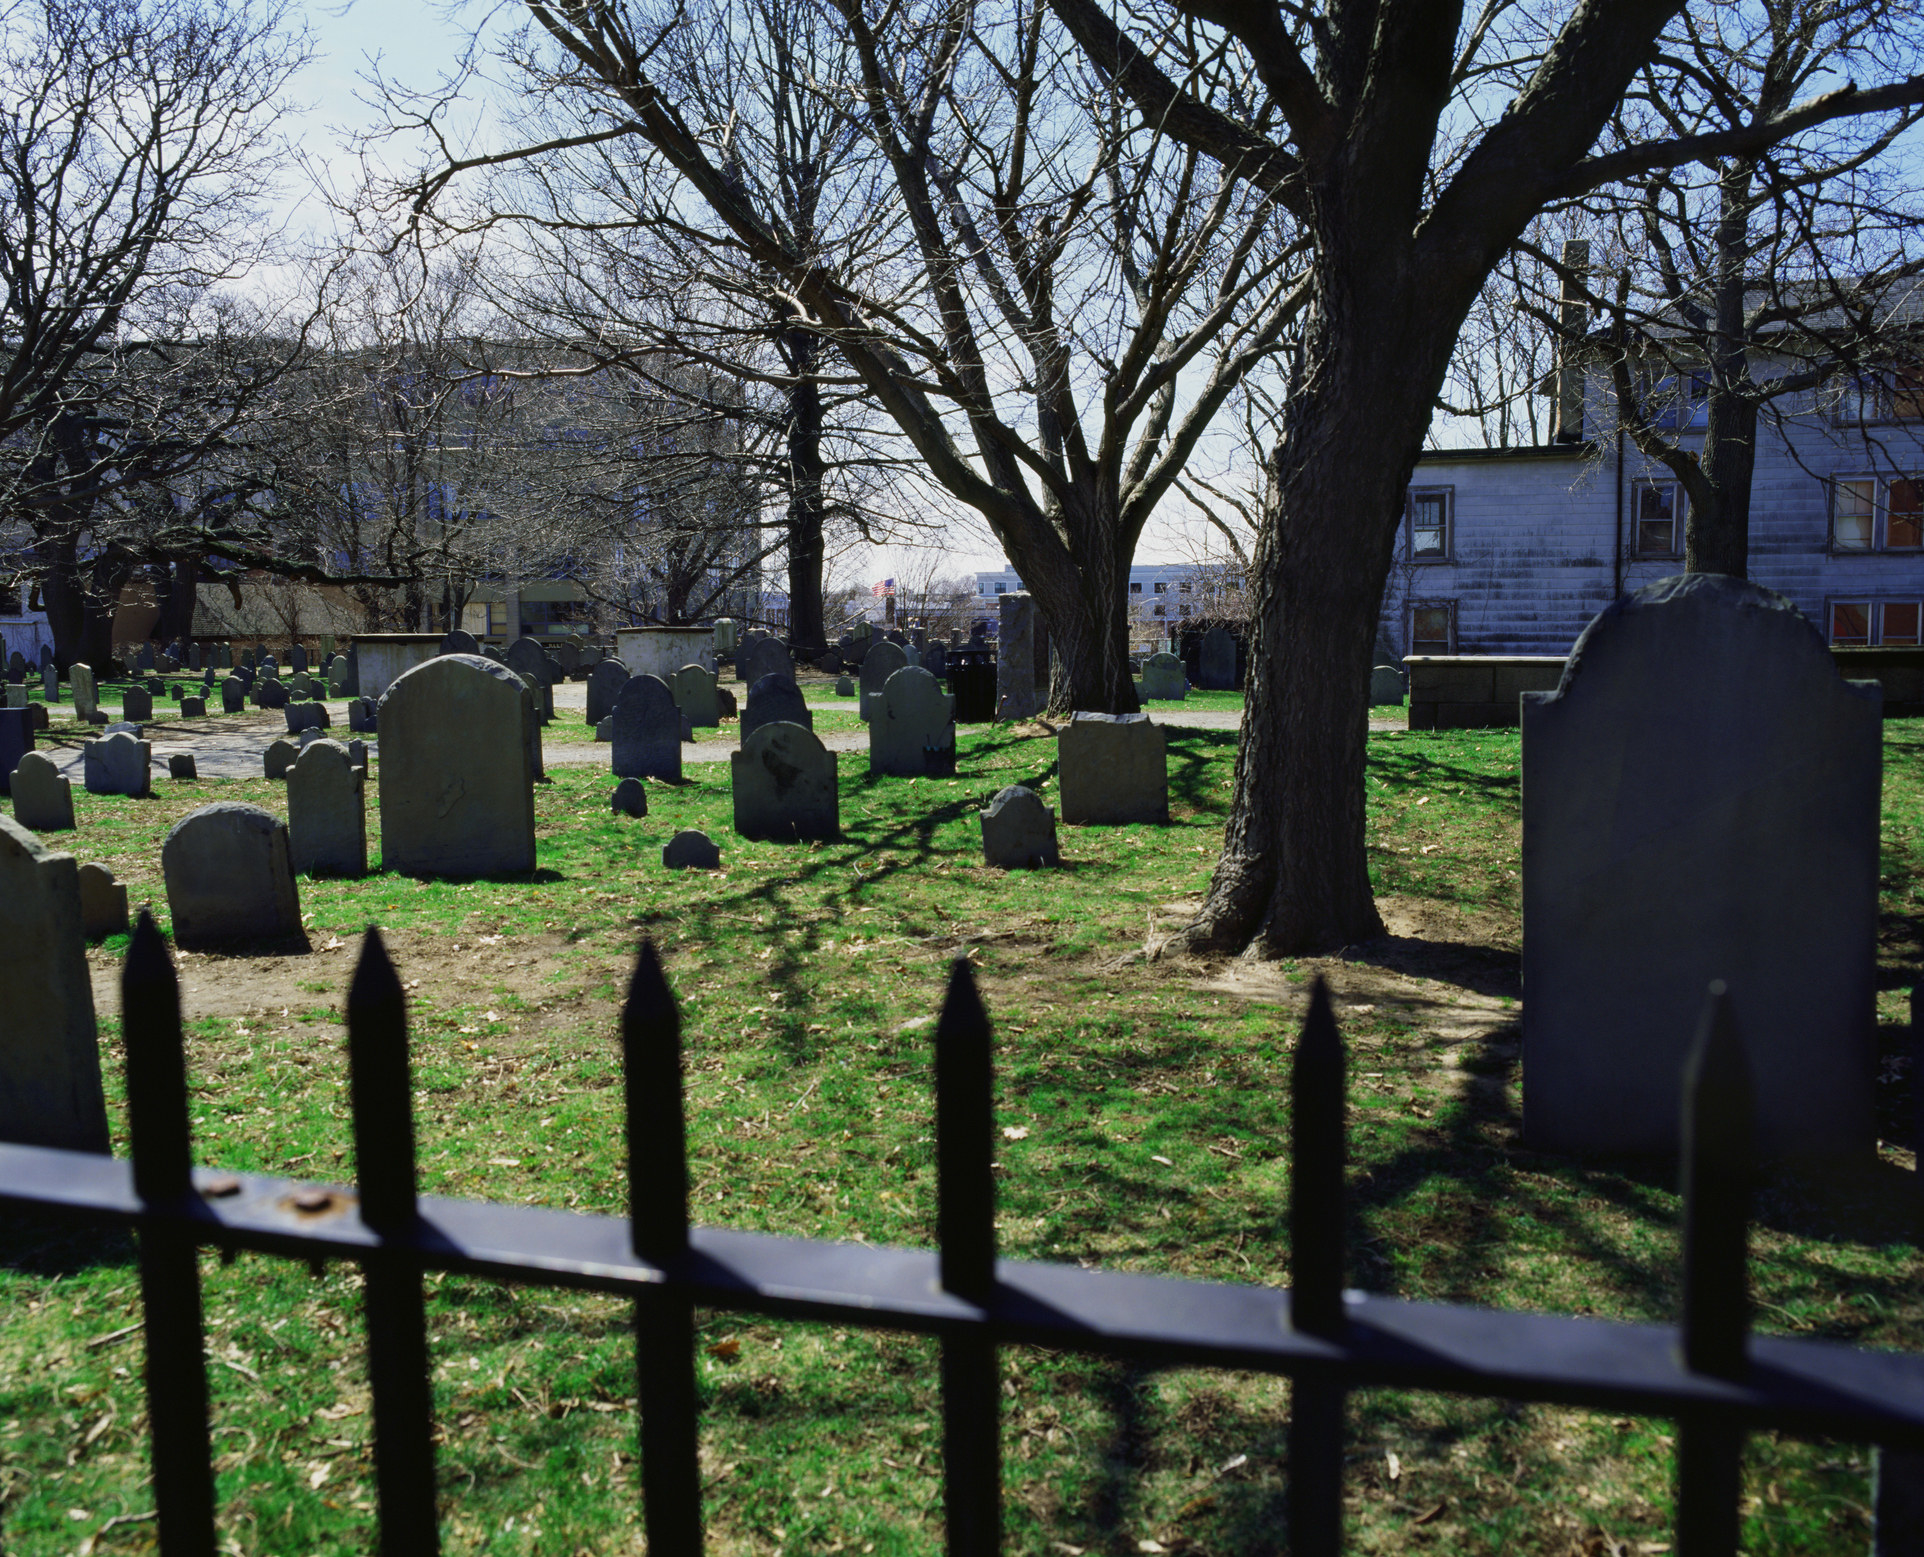 a fenced off grassy field with gravestones and trees